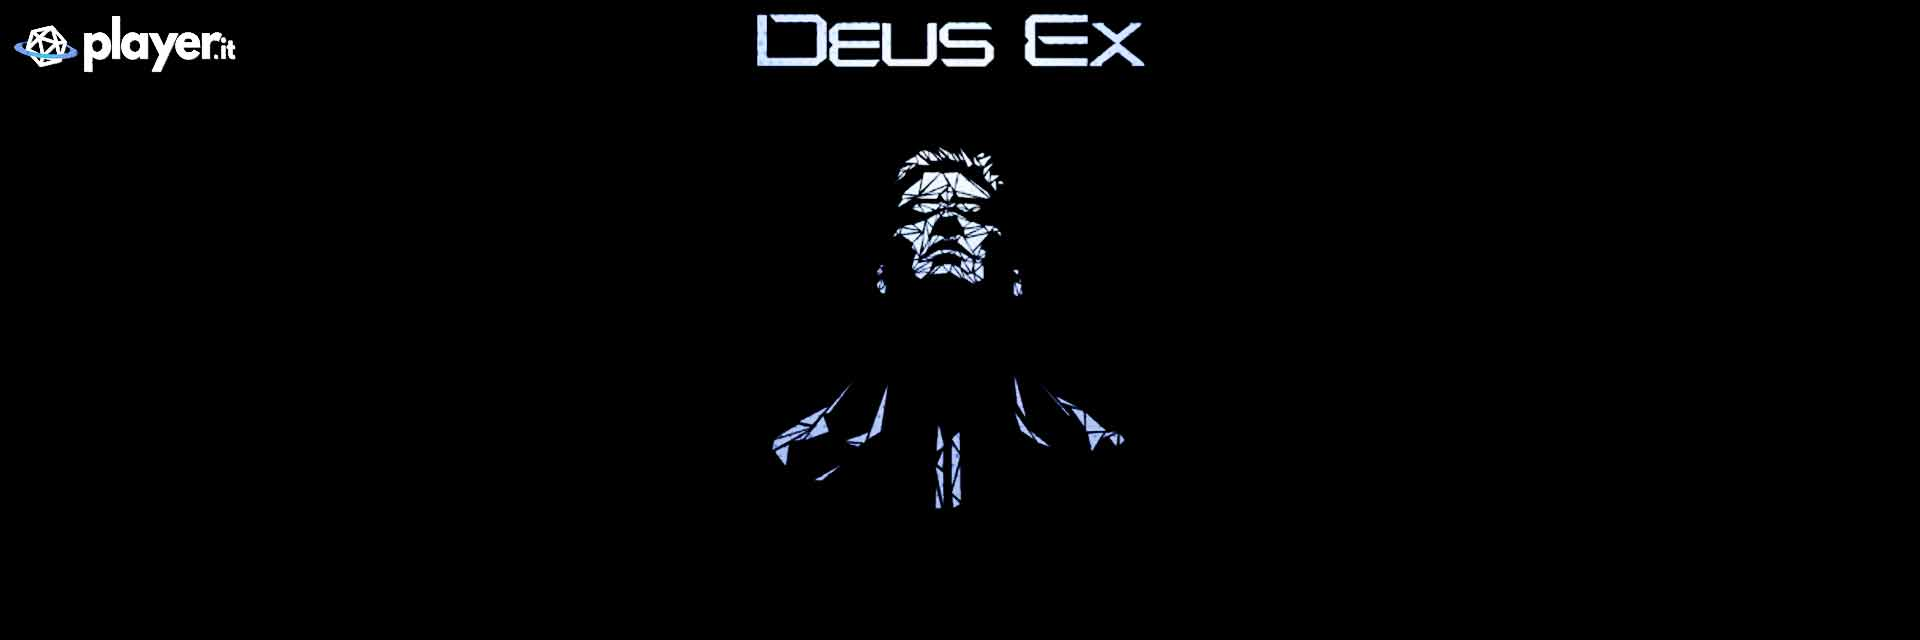 deus ex wallpaper in hd